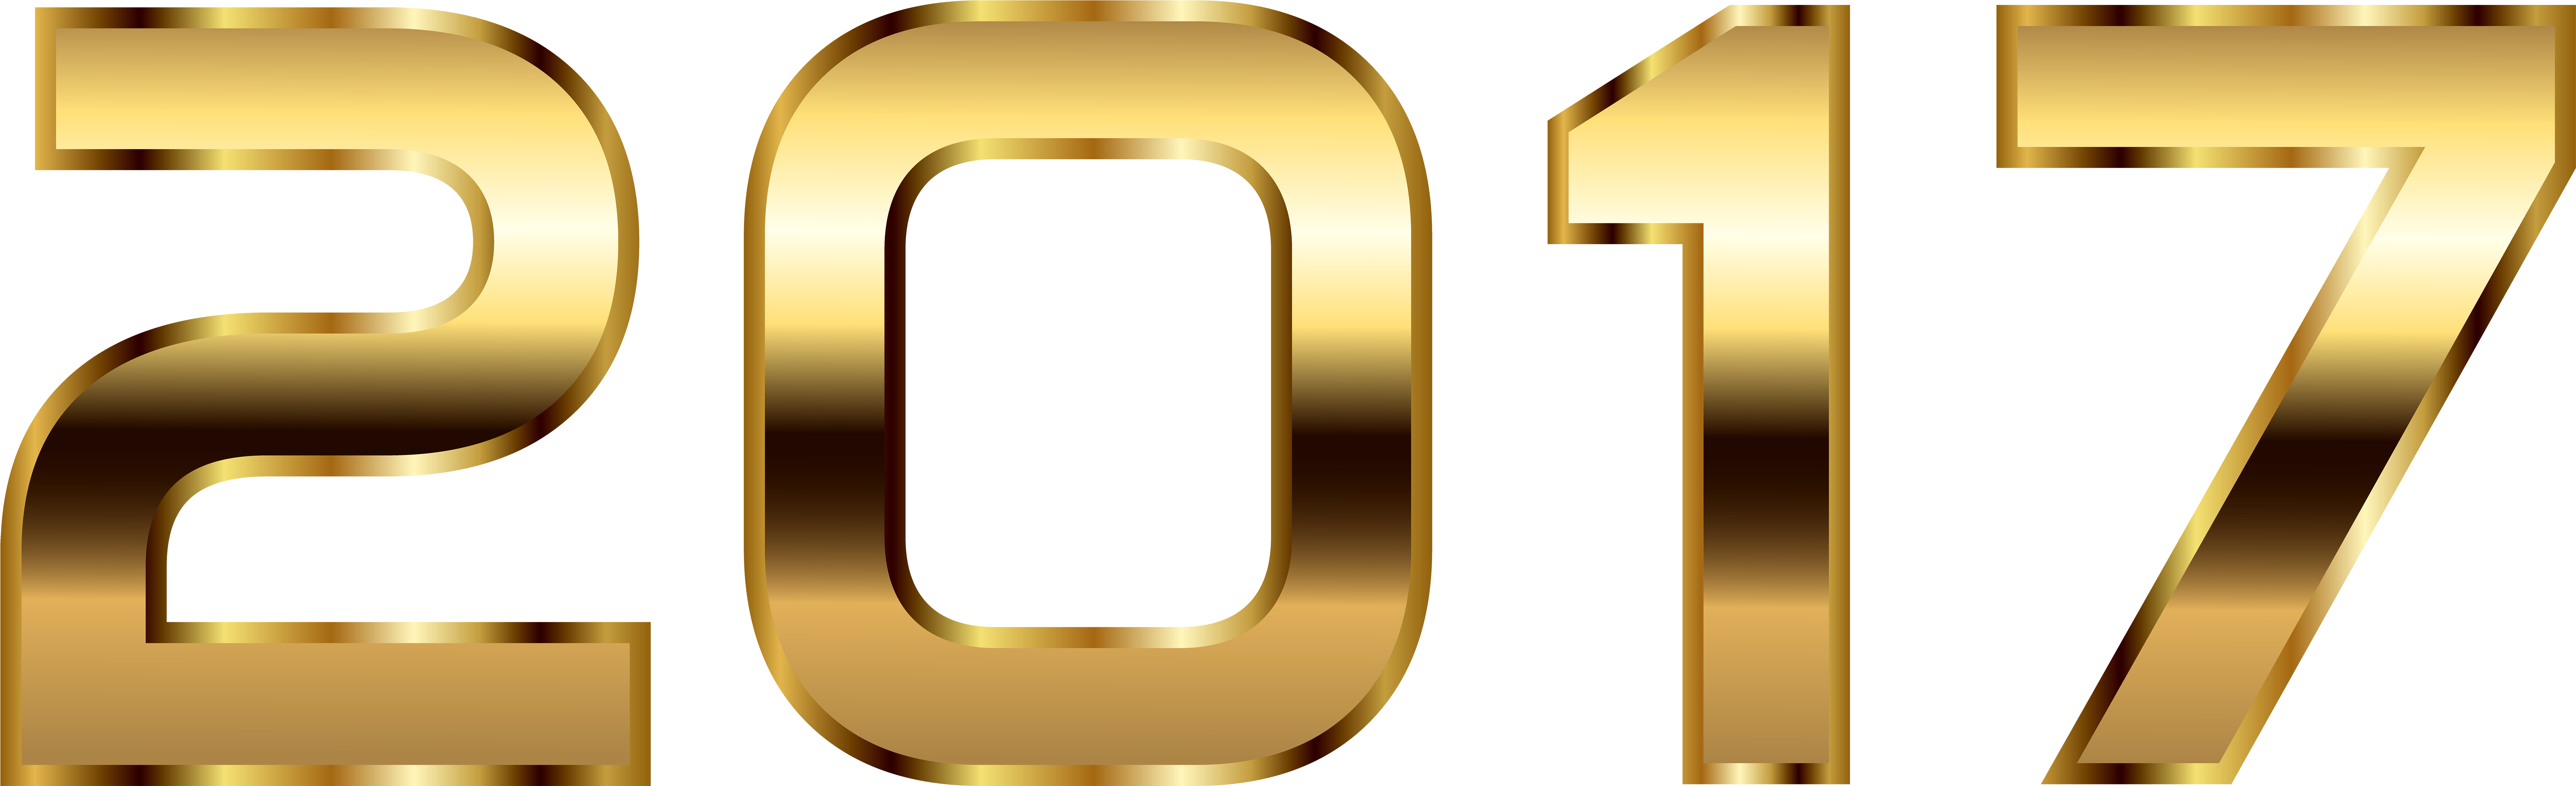 2017 numbers clipart clipart library library 2017 Gold Numbers Png Clipart - Full Size Clipart (#59726) - PinClipart clipart library library